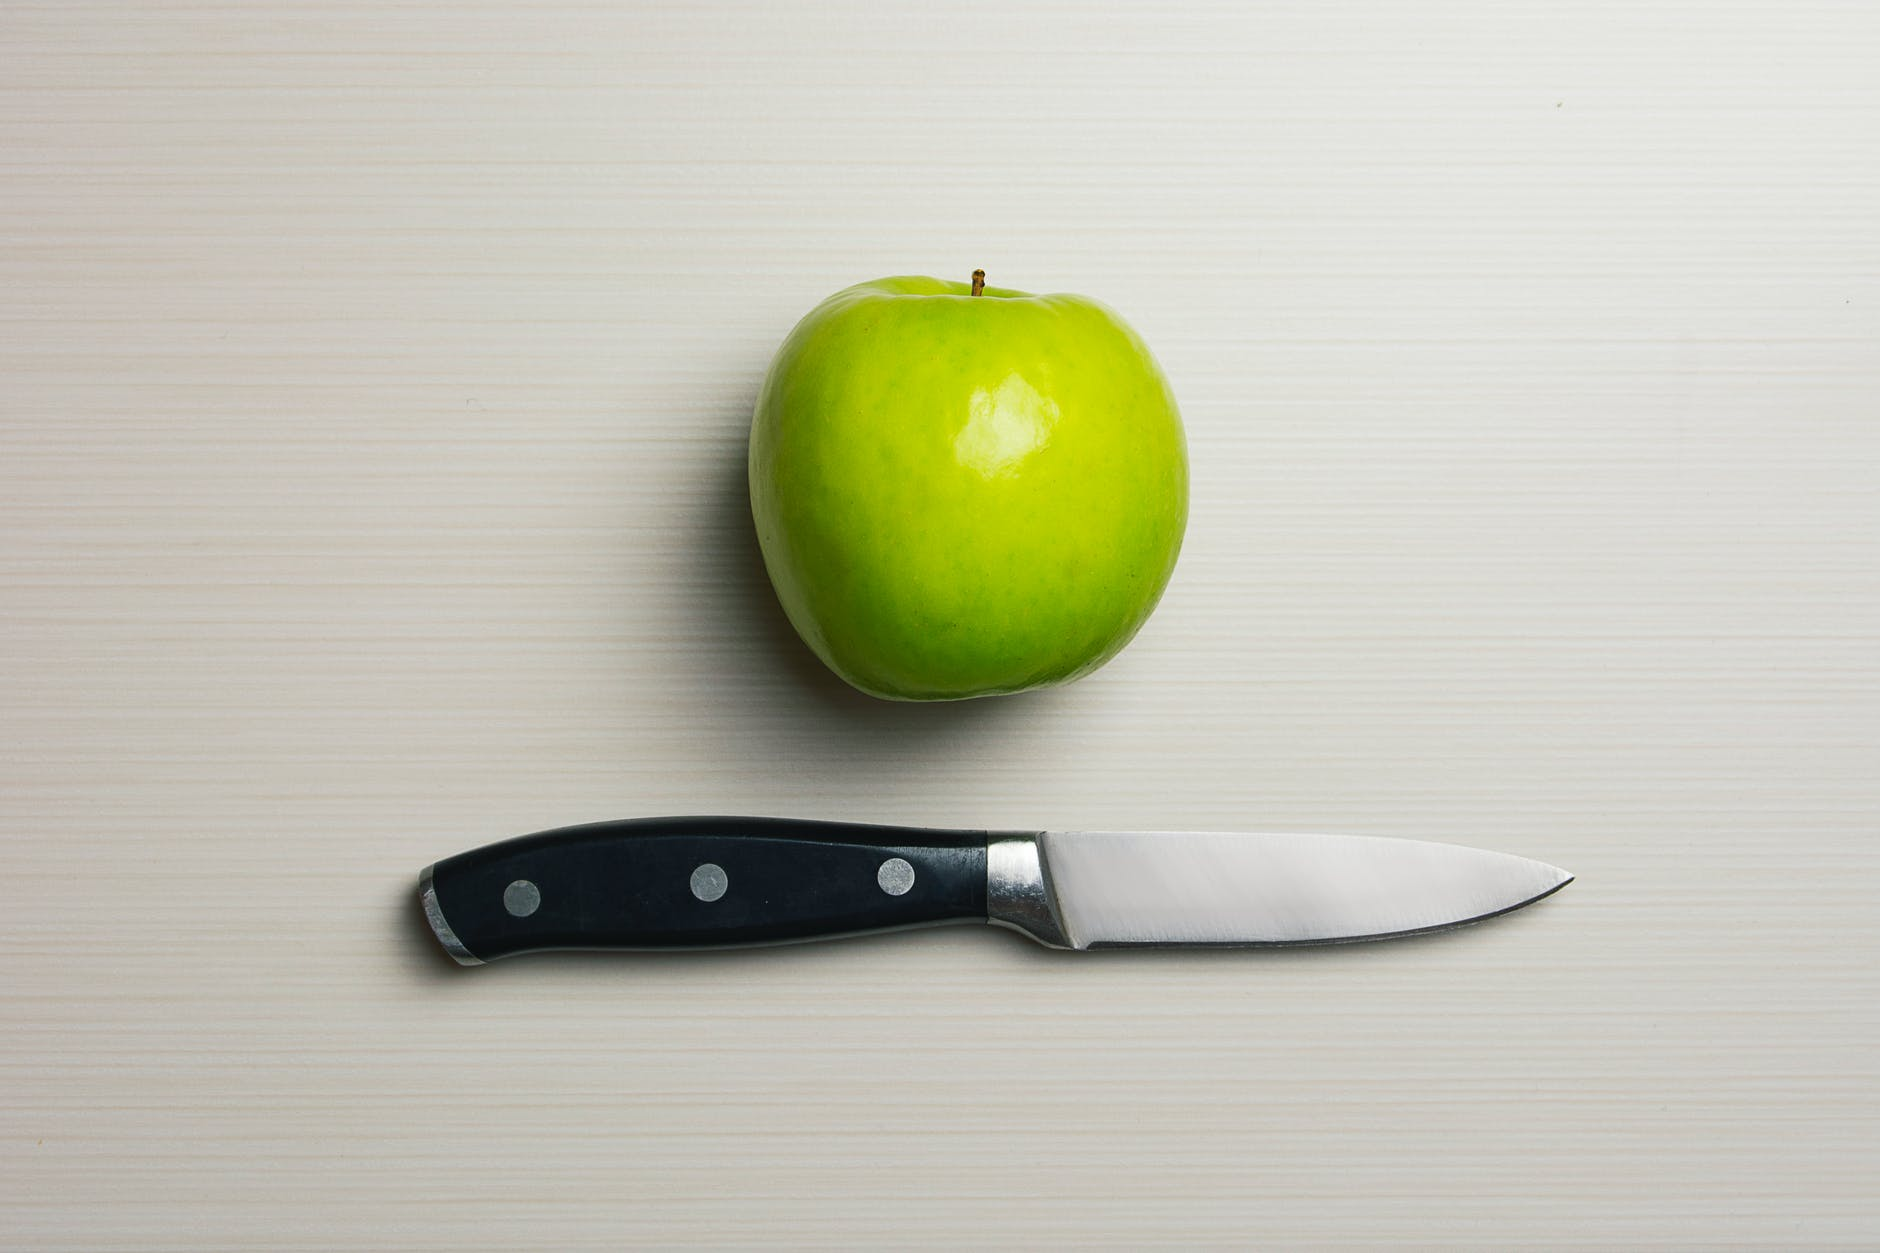 Knife and green apple